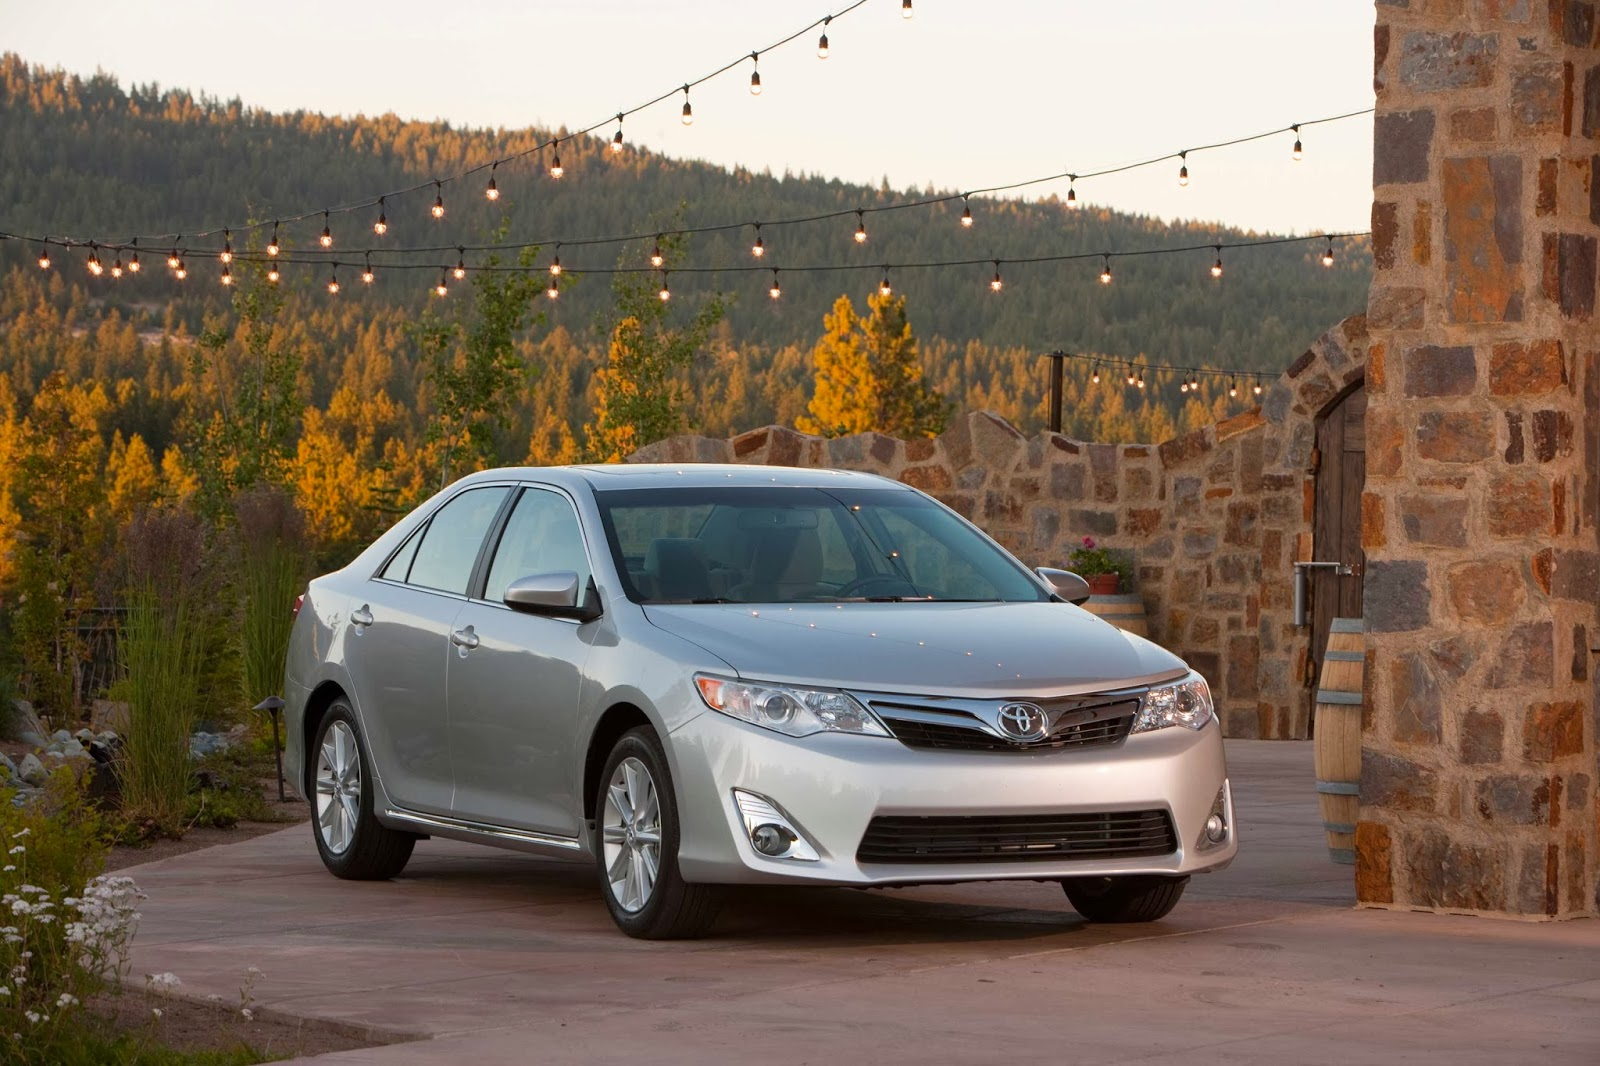 The 2013 Toyota Camry Xle V6 Can Run With Nissan Altima